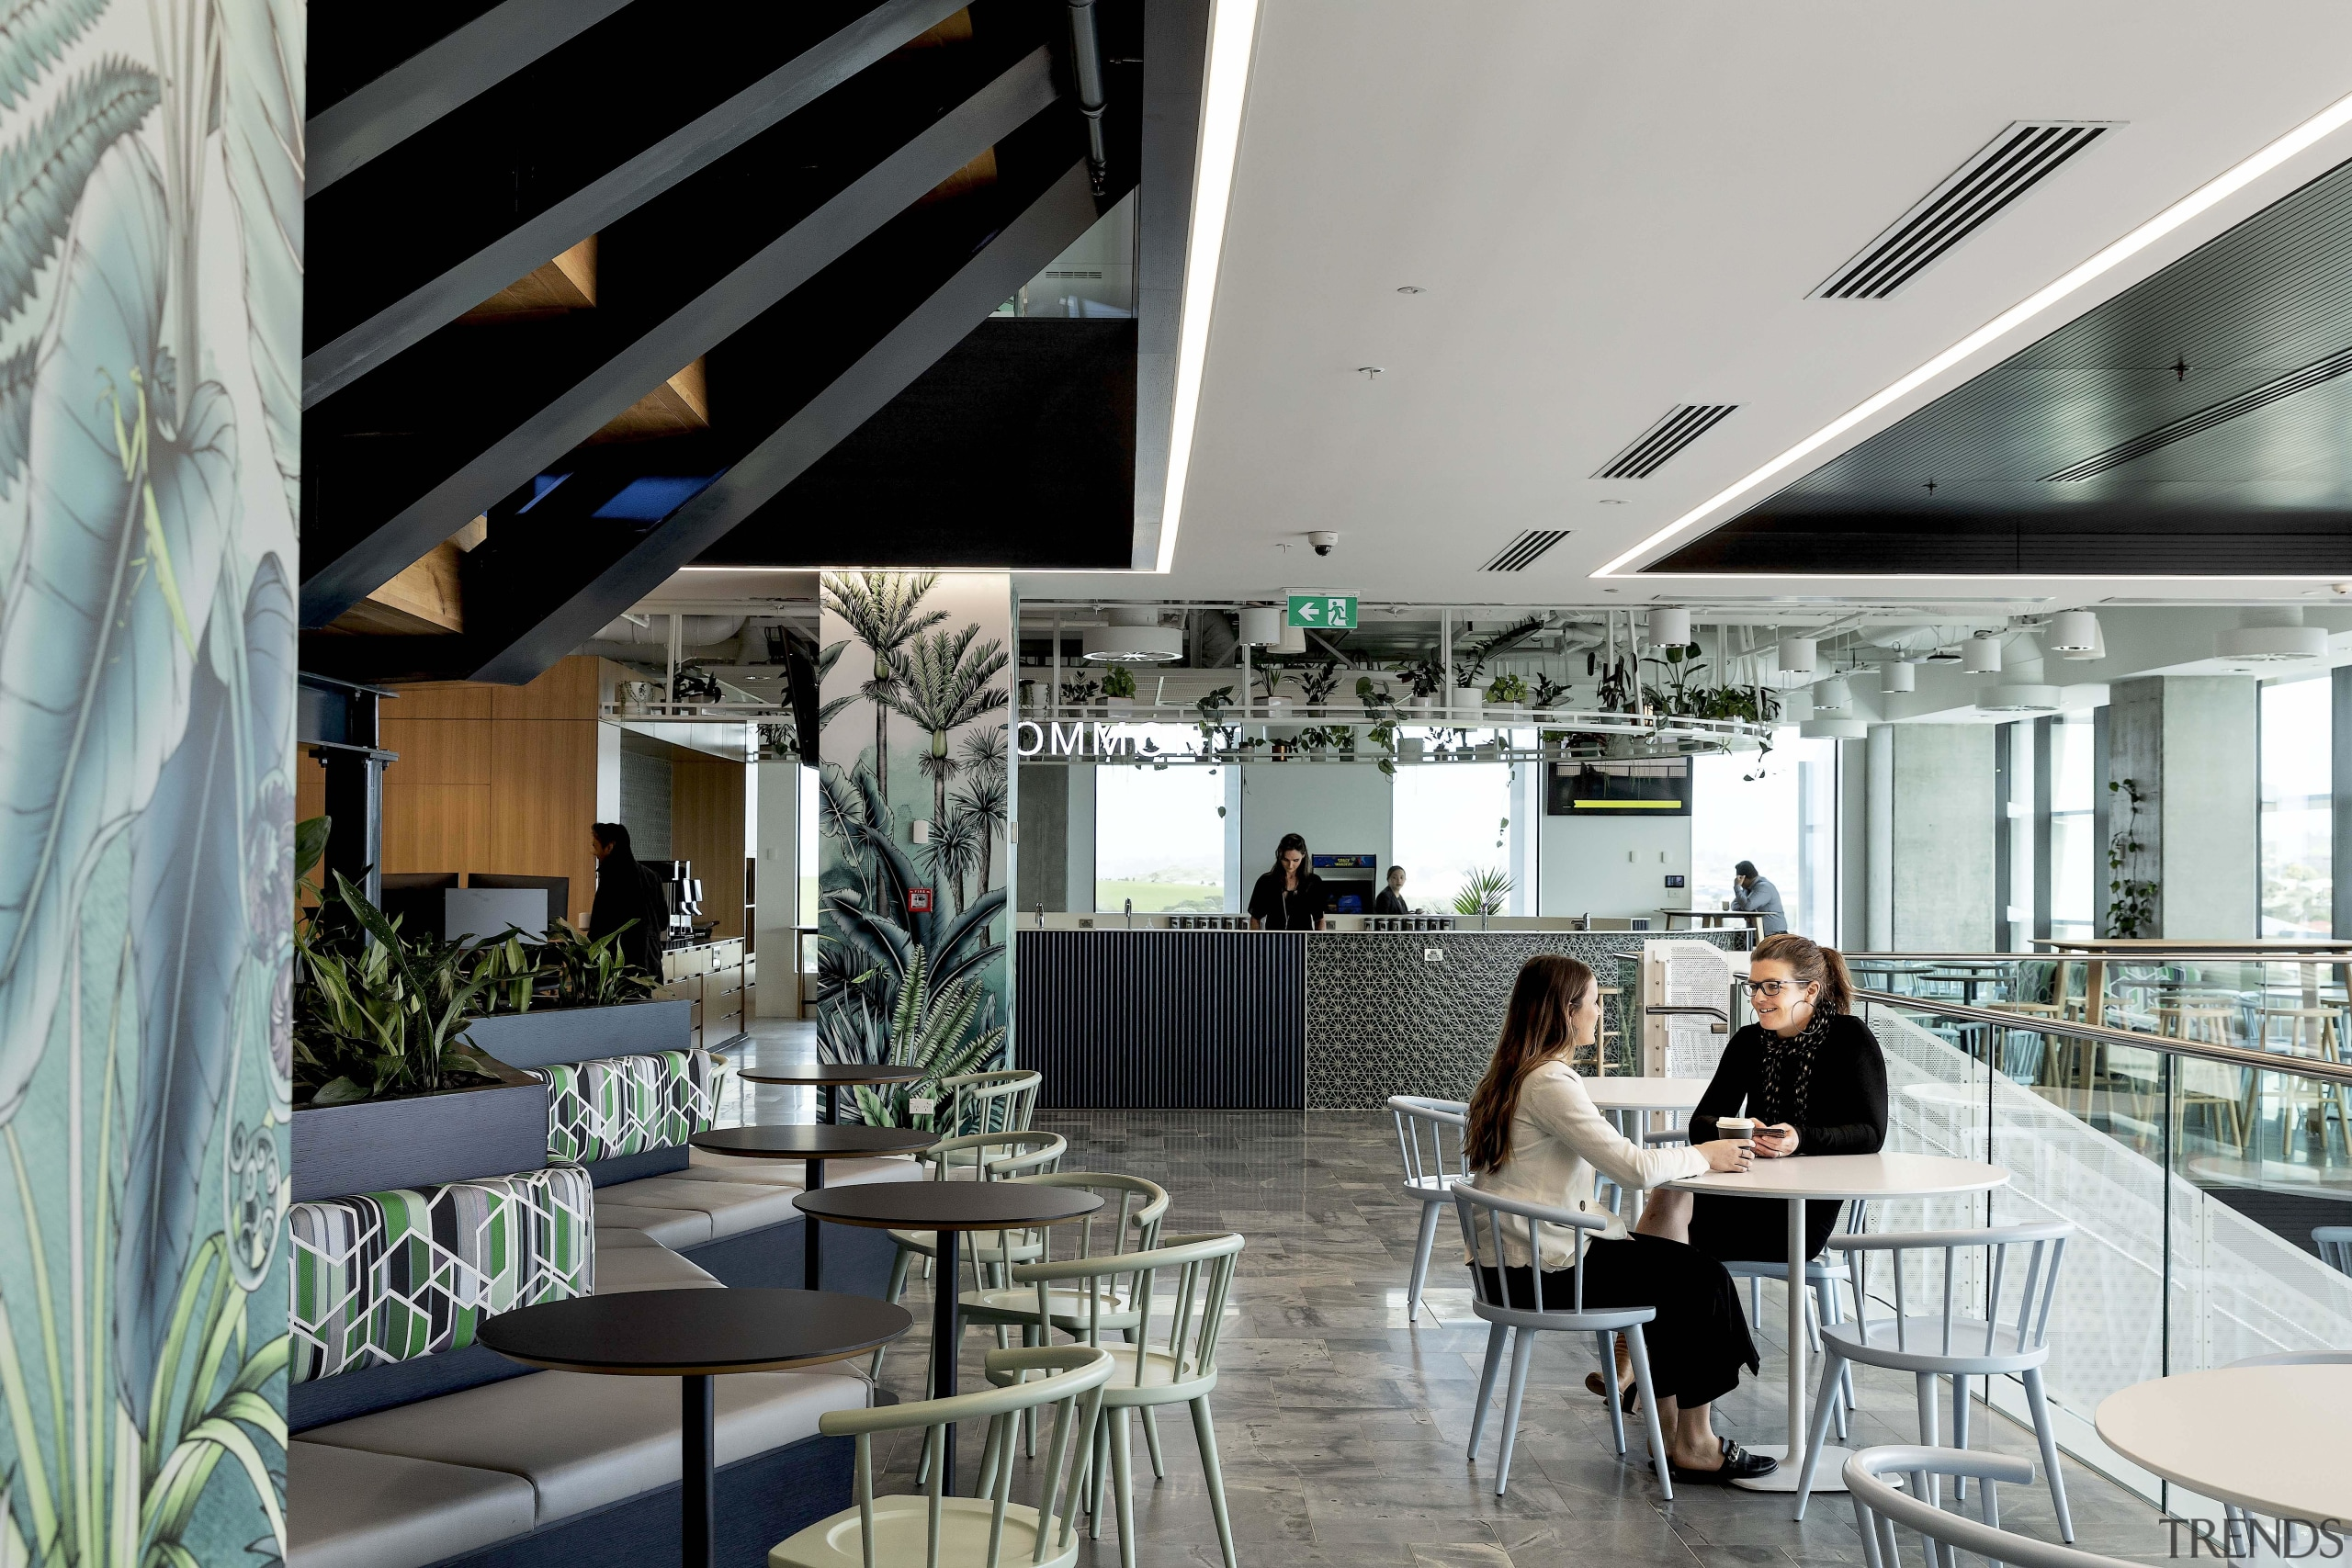 This flexible work and social space under the gray, black